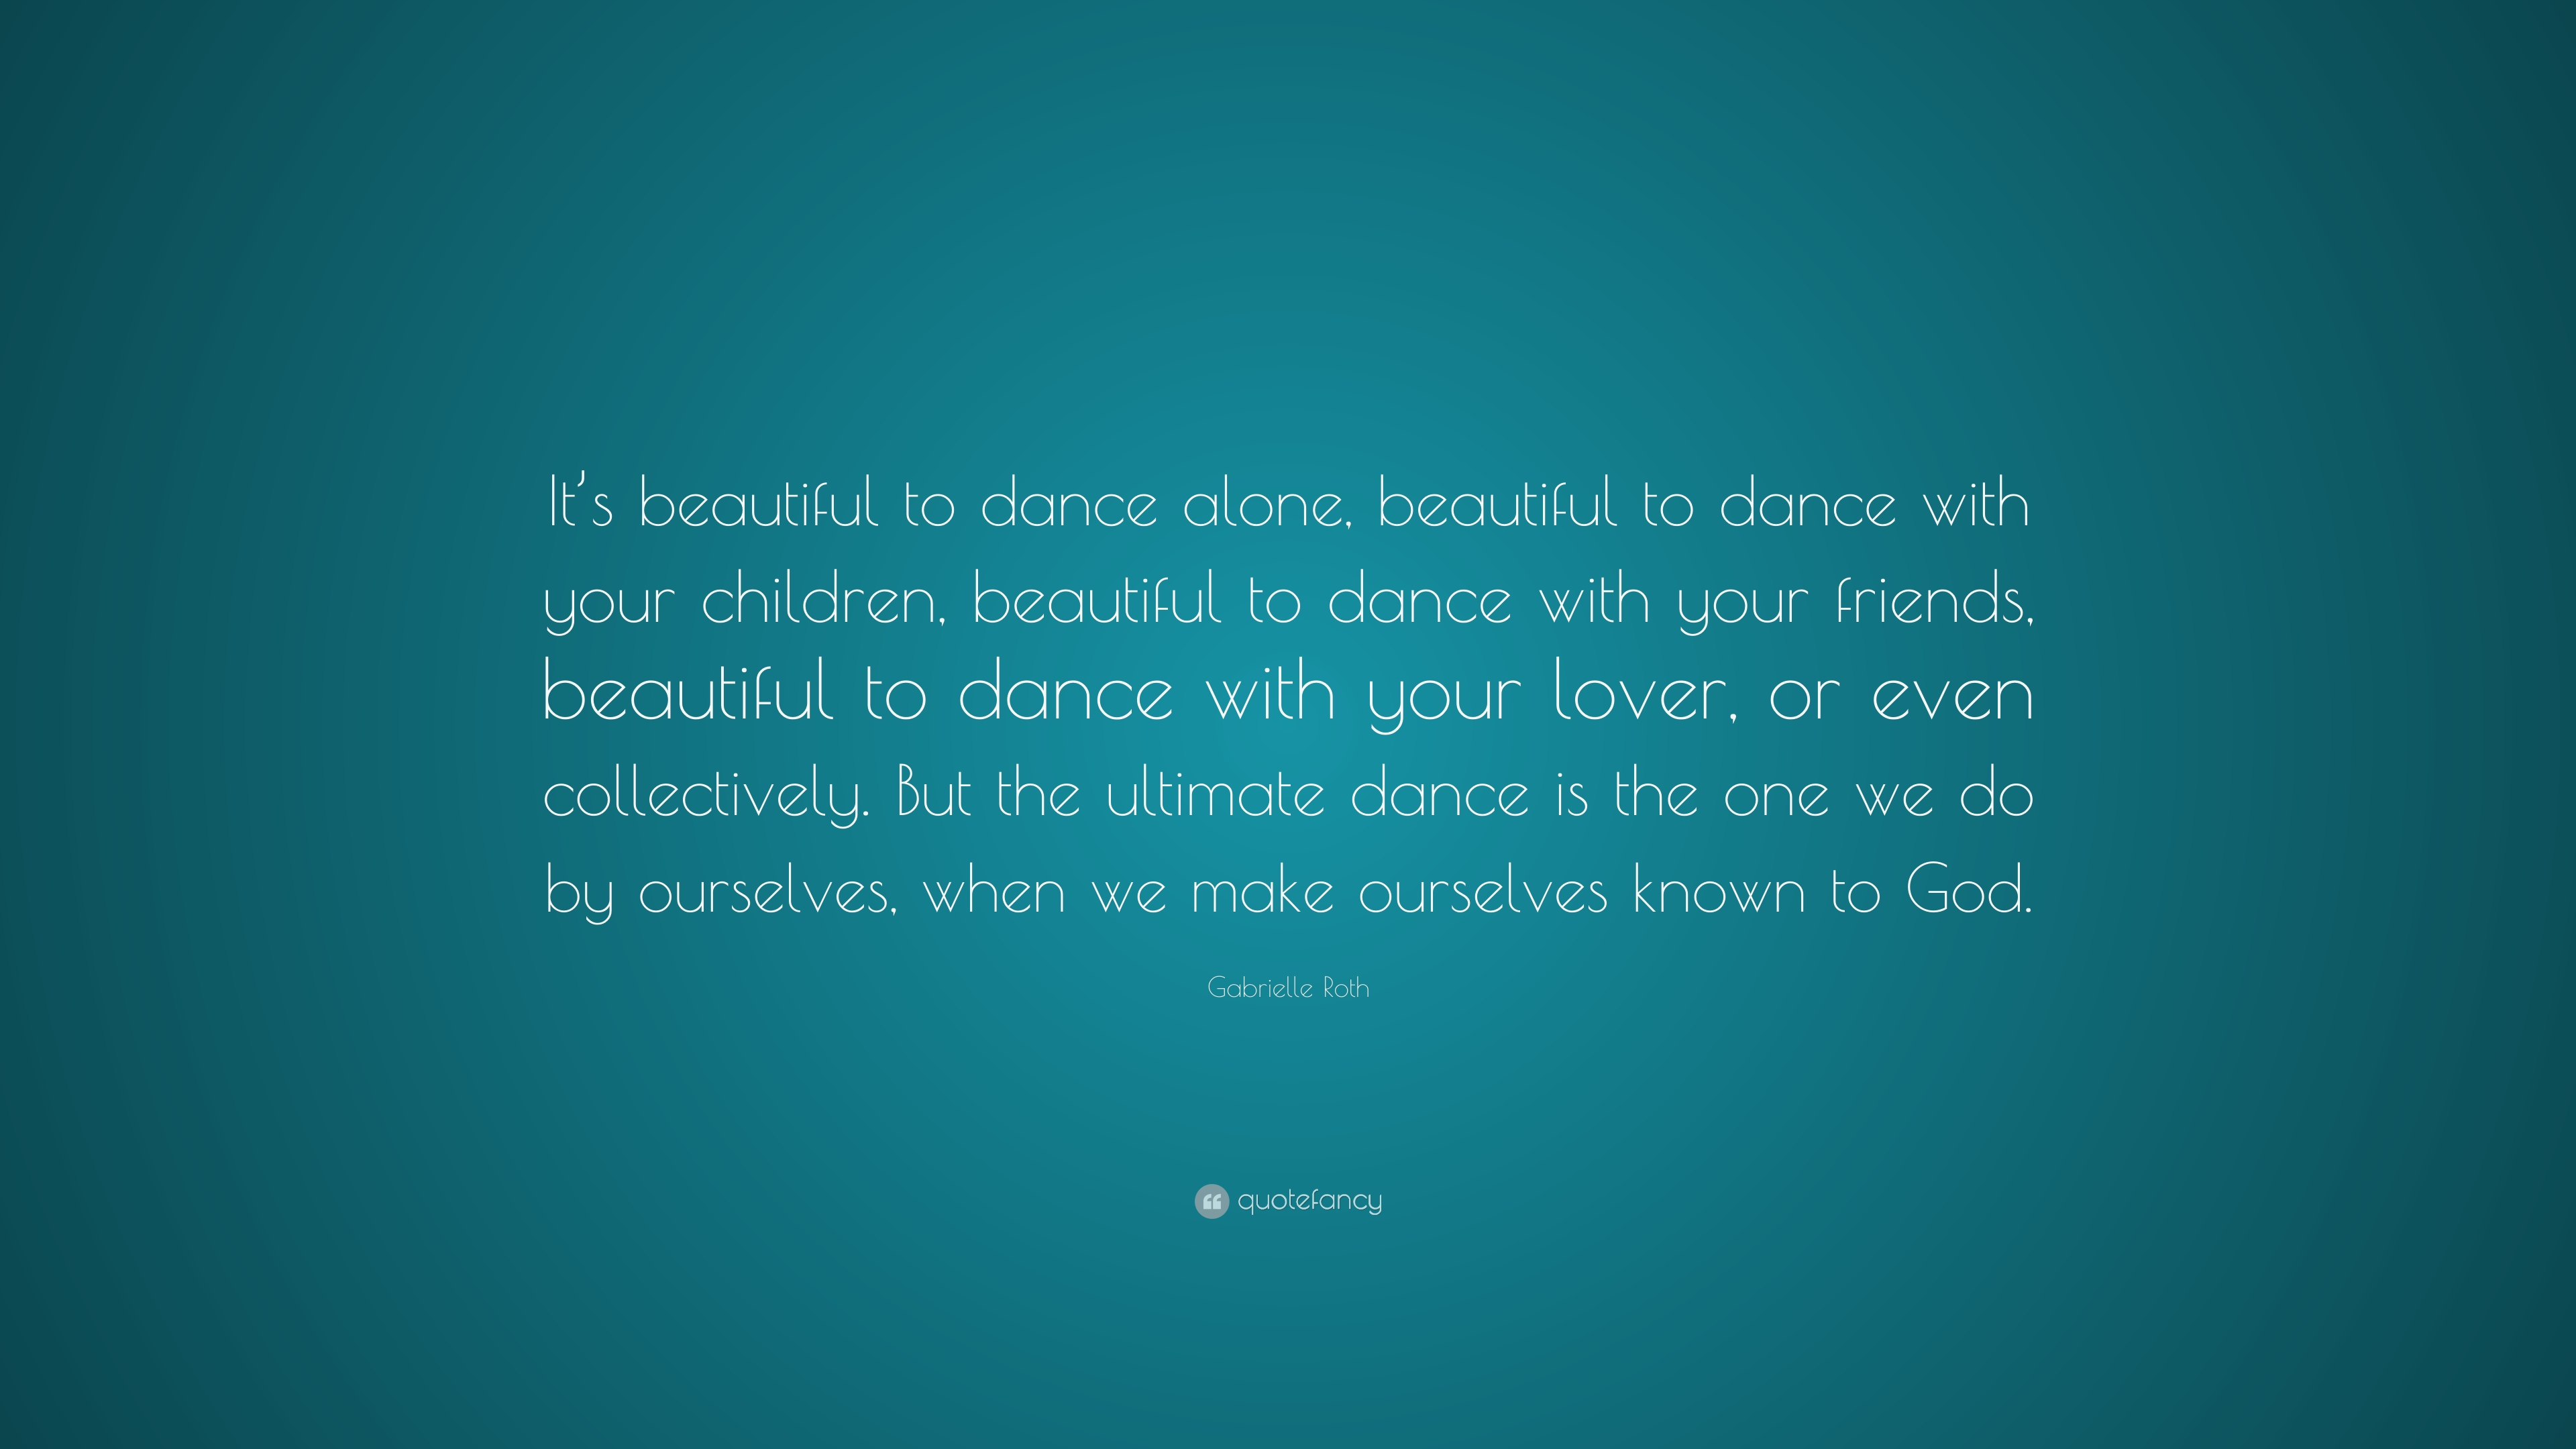 Gabrielle Roth Quote It S Beautiful To Dance Alone Beautiful To Dance With Your Children Beautiful To Dance With Your Friends Beautiful To 7 Wallpapers Quotefancy